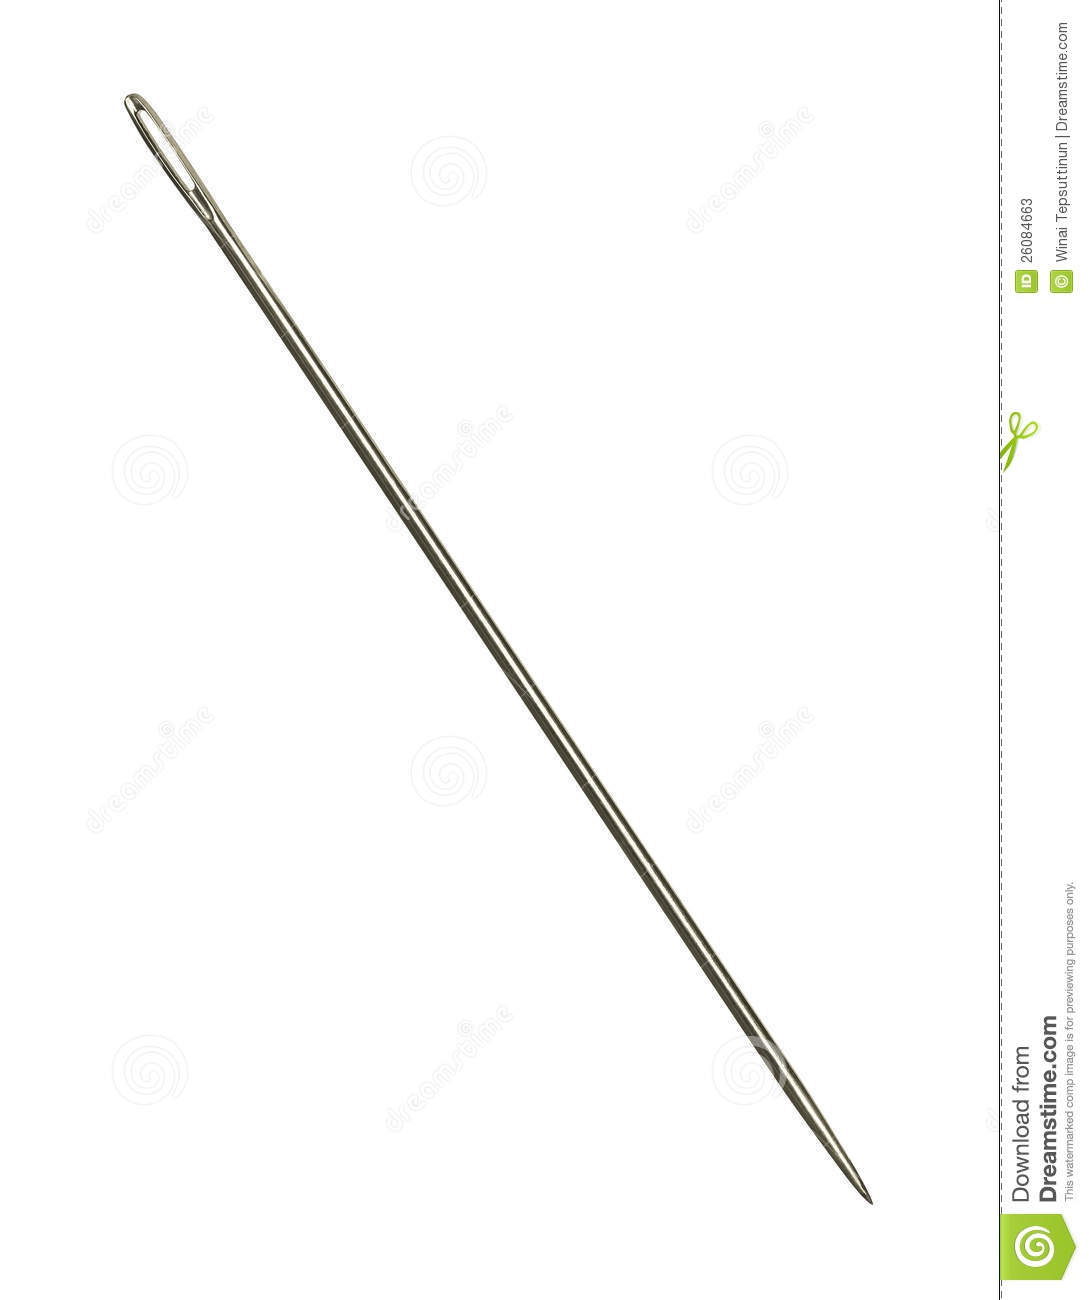 clipart silver needle with Stock Photos Sewing Needle Image26084663 on Safety Pin Isolated On White Background 143654 Vector Clipart likewise 20131102 How To Buy A Lacrosse Stick as well Stock Photos Sewing Needle Image26084663 together with Silver Medical Record Icon 1182303 additionally Tailor.